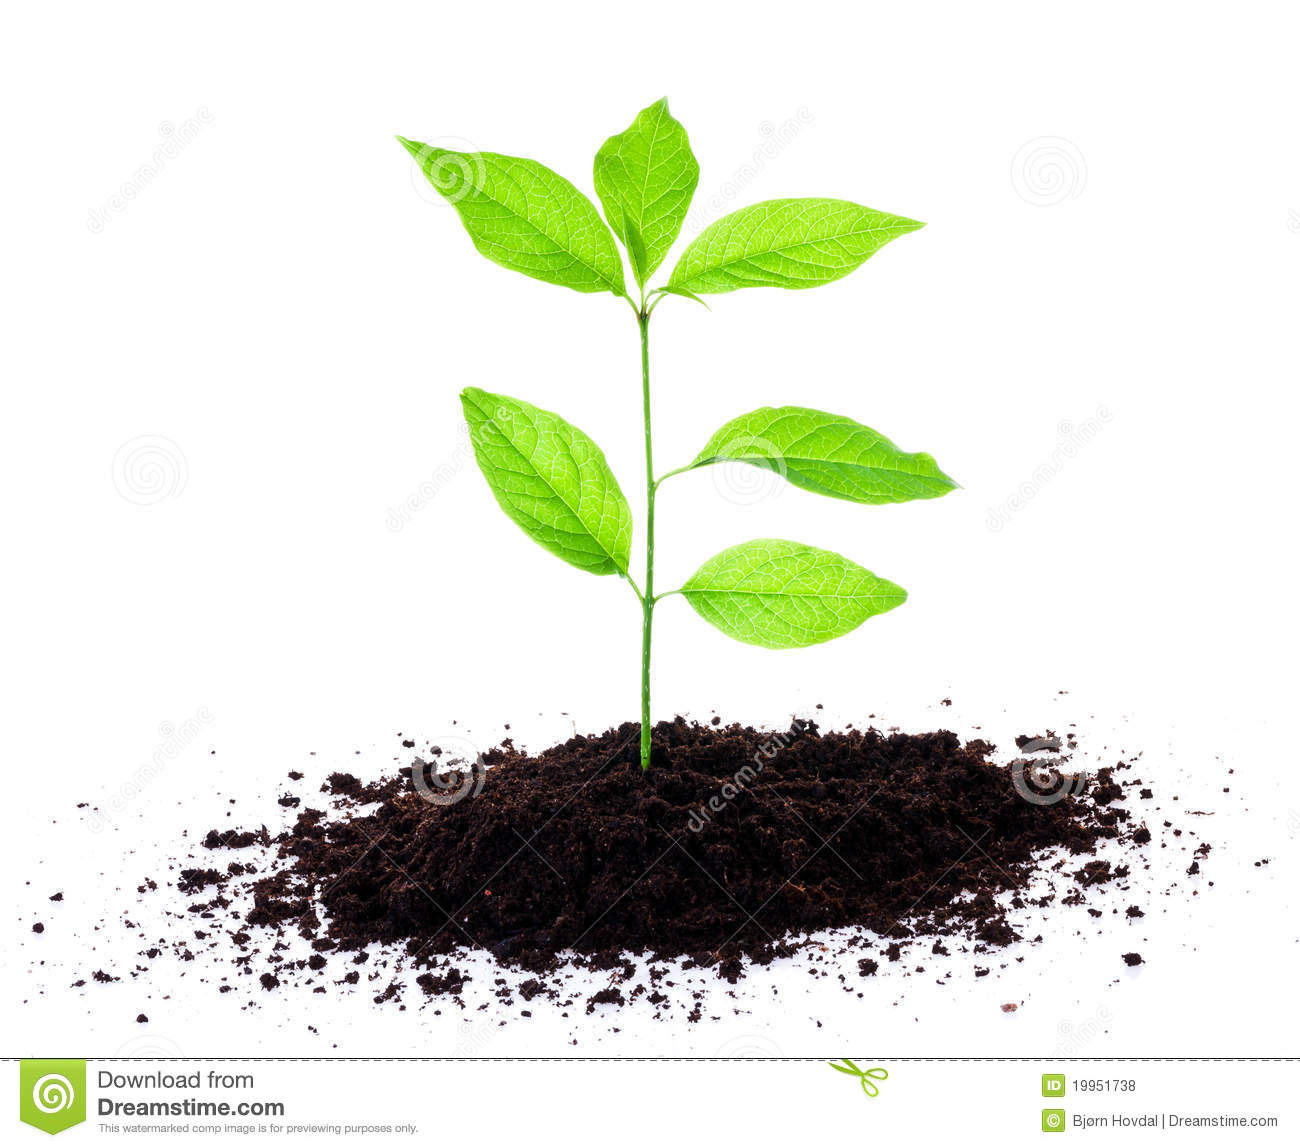 Royalty free plant images vector black and white Royalty free plant images - ClipartFest vector black and white